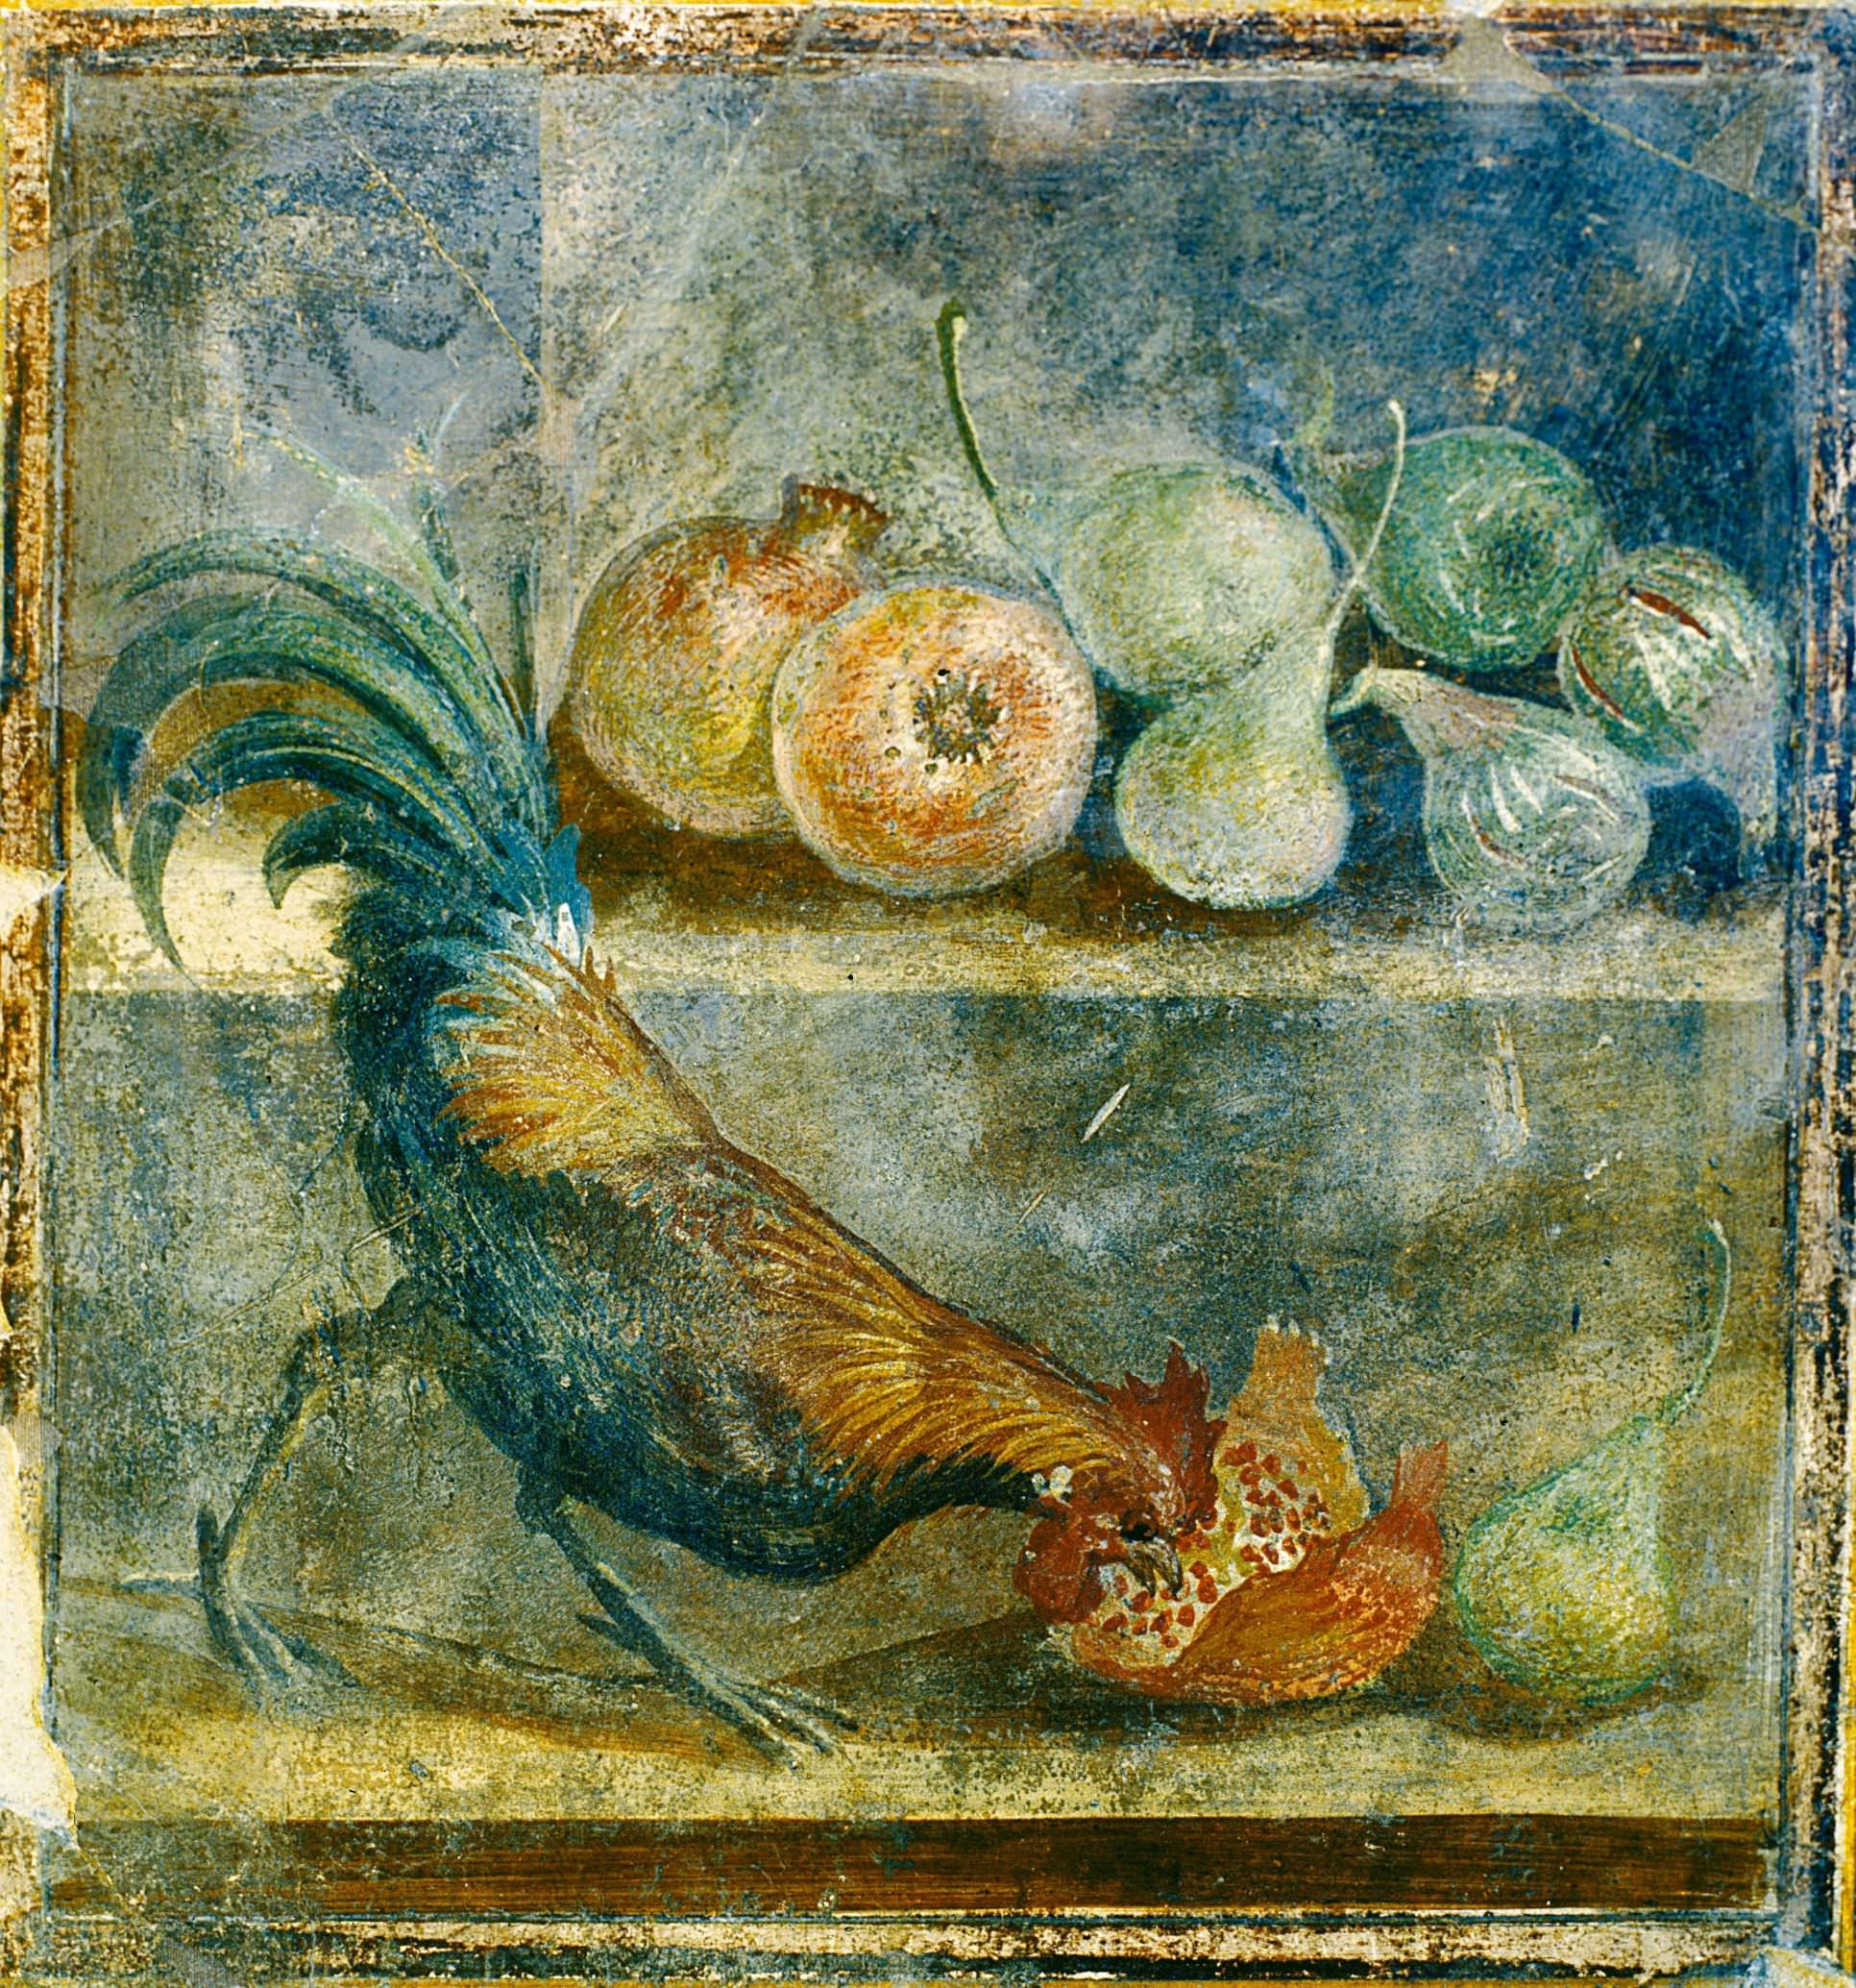 Still life wall panel fresco showing a cockerel pecking at figs, pears and pomegranates, AD 45–79. Pompeii, House of the Chaste Lovers (55 x 52 cm). Parco Archeologico di Pompeii